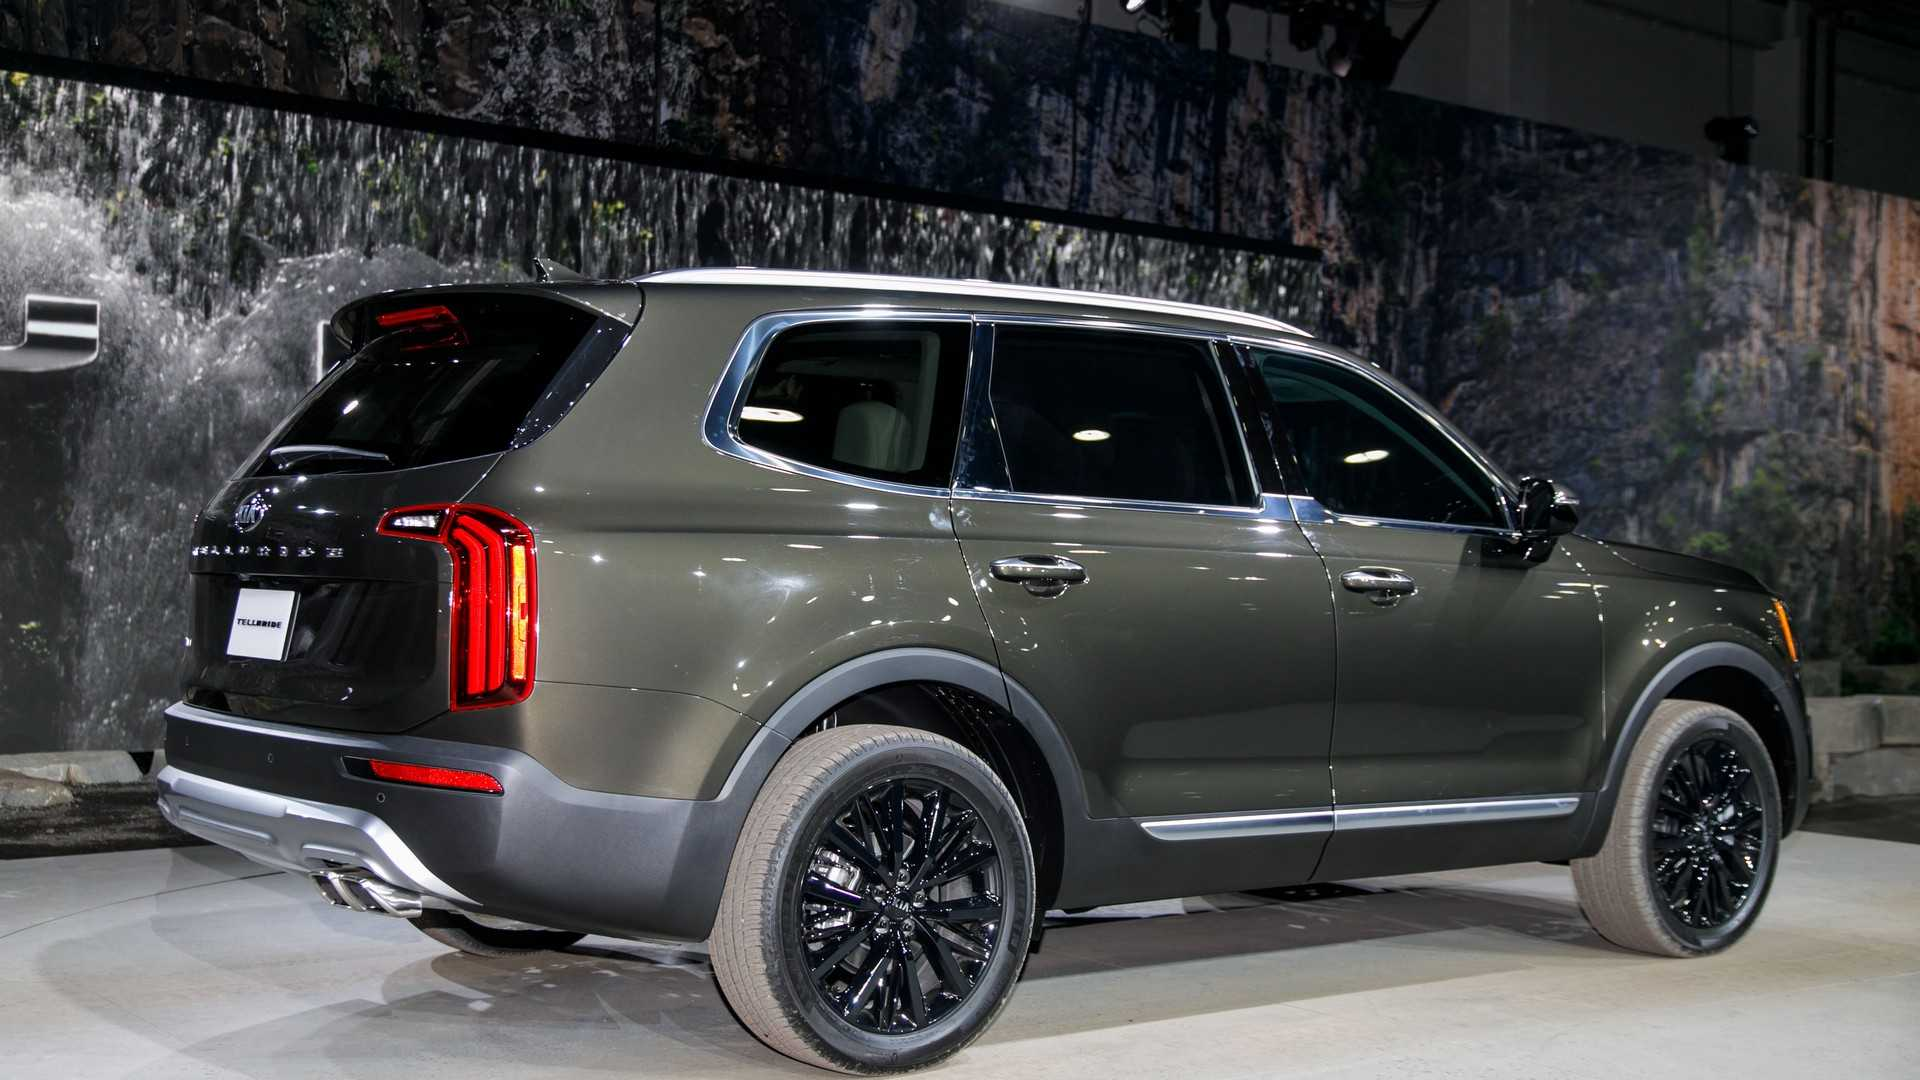 81 The Best 2020 Kia Telluride Sx Awd Images